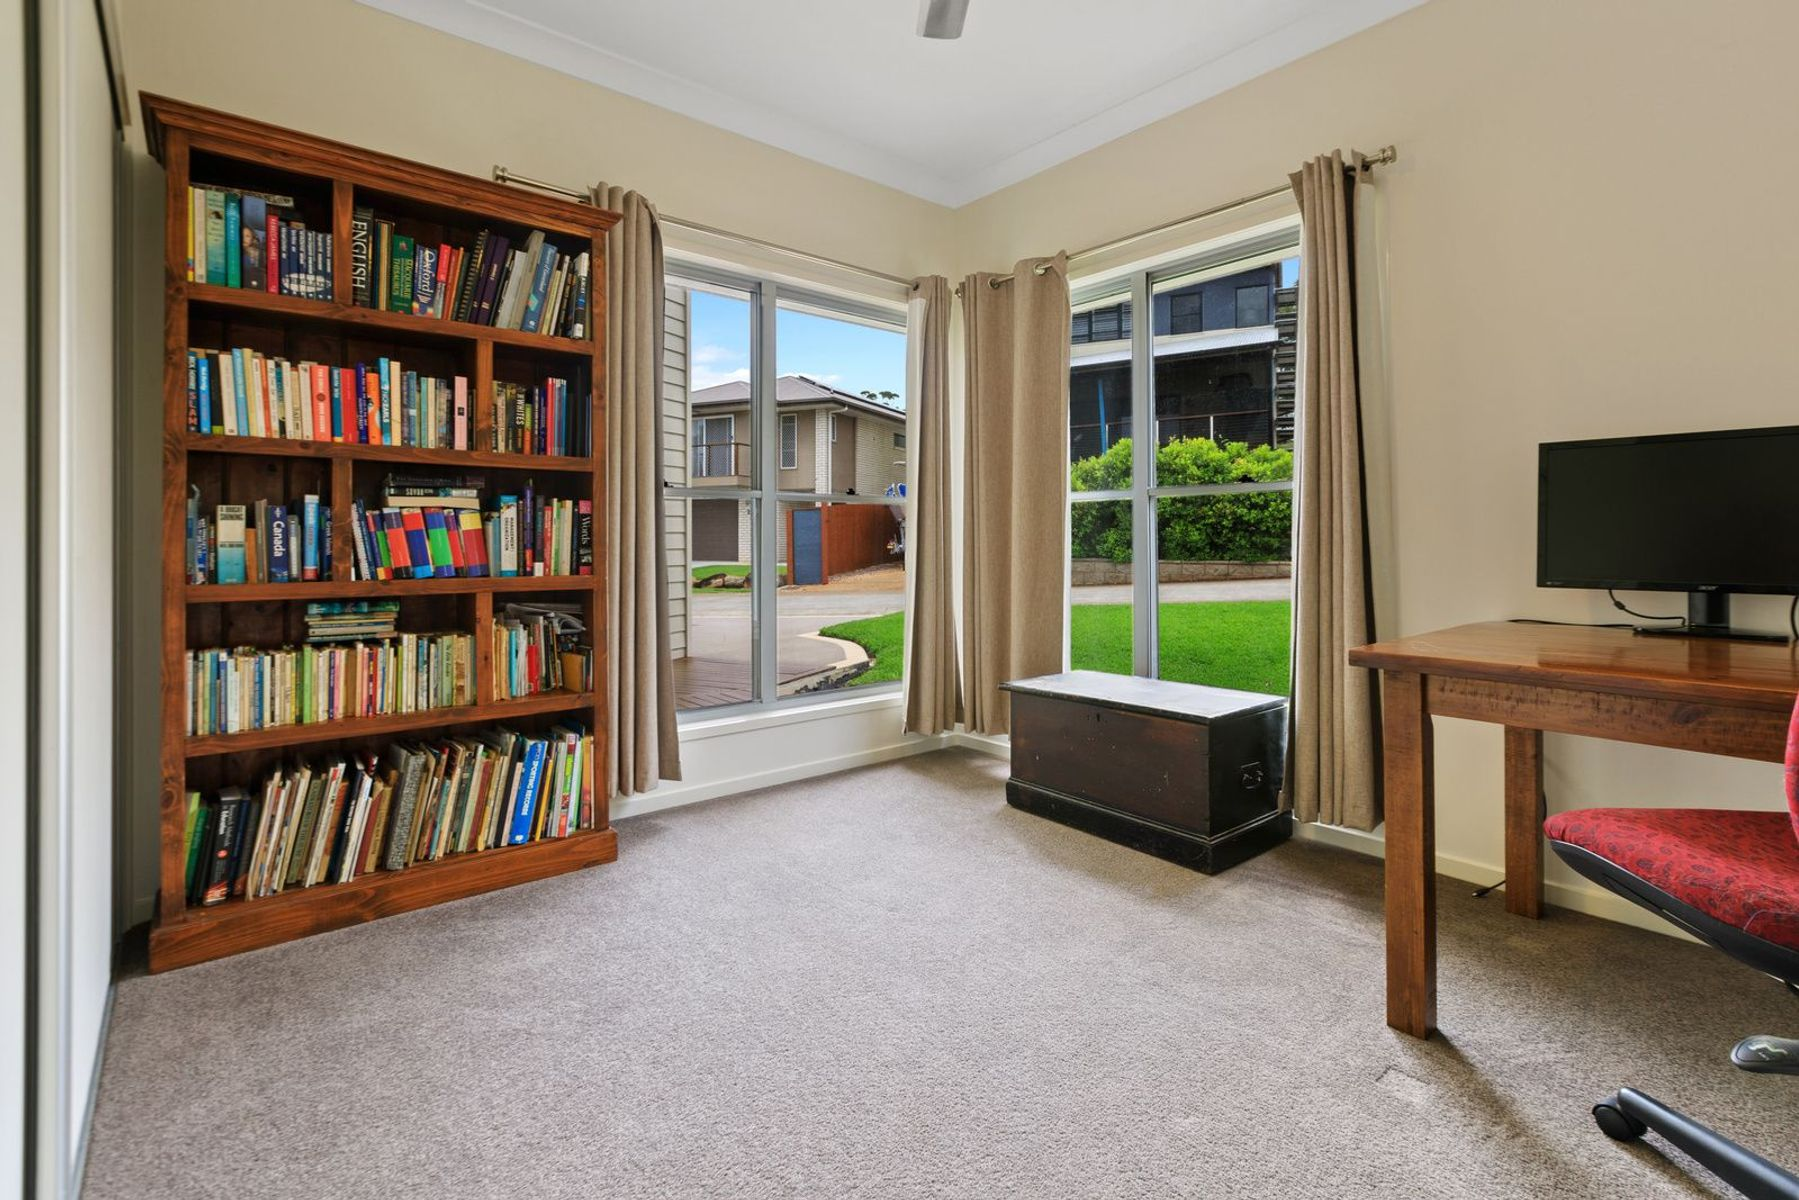 7/7 Oasis Close, Manly West, QLD 4179